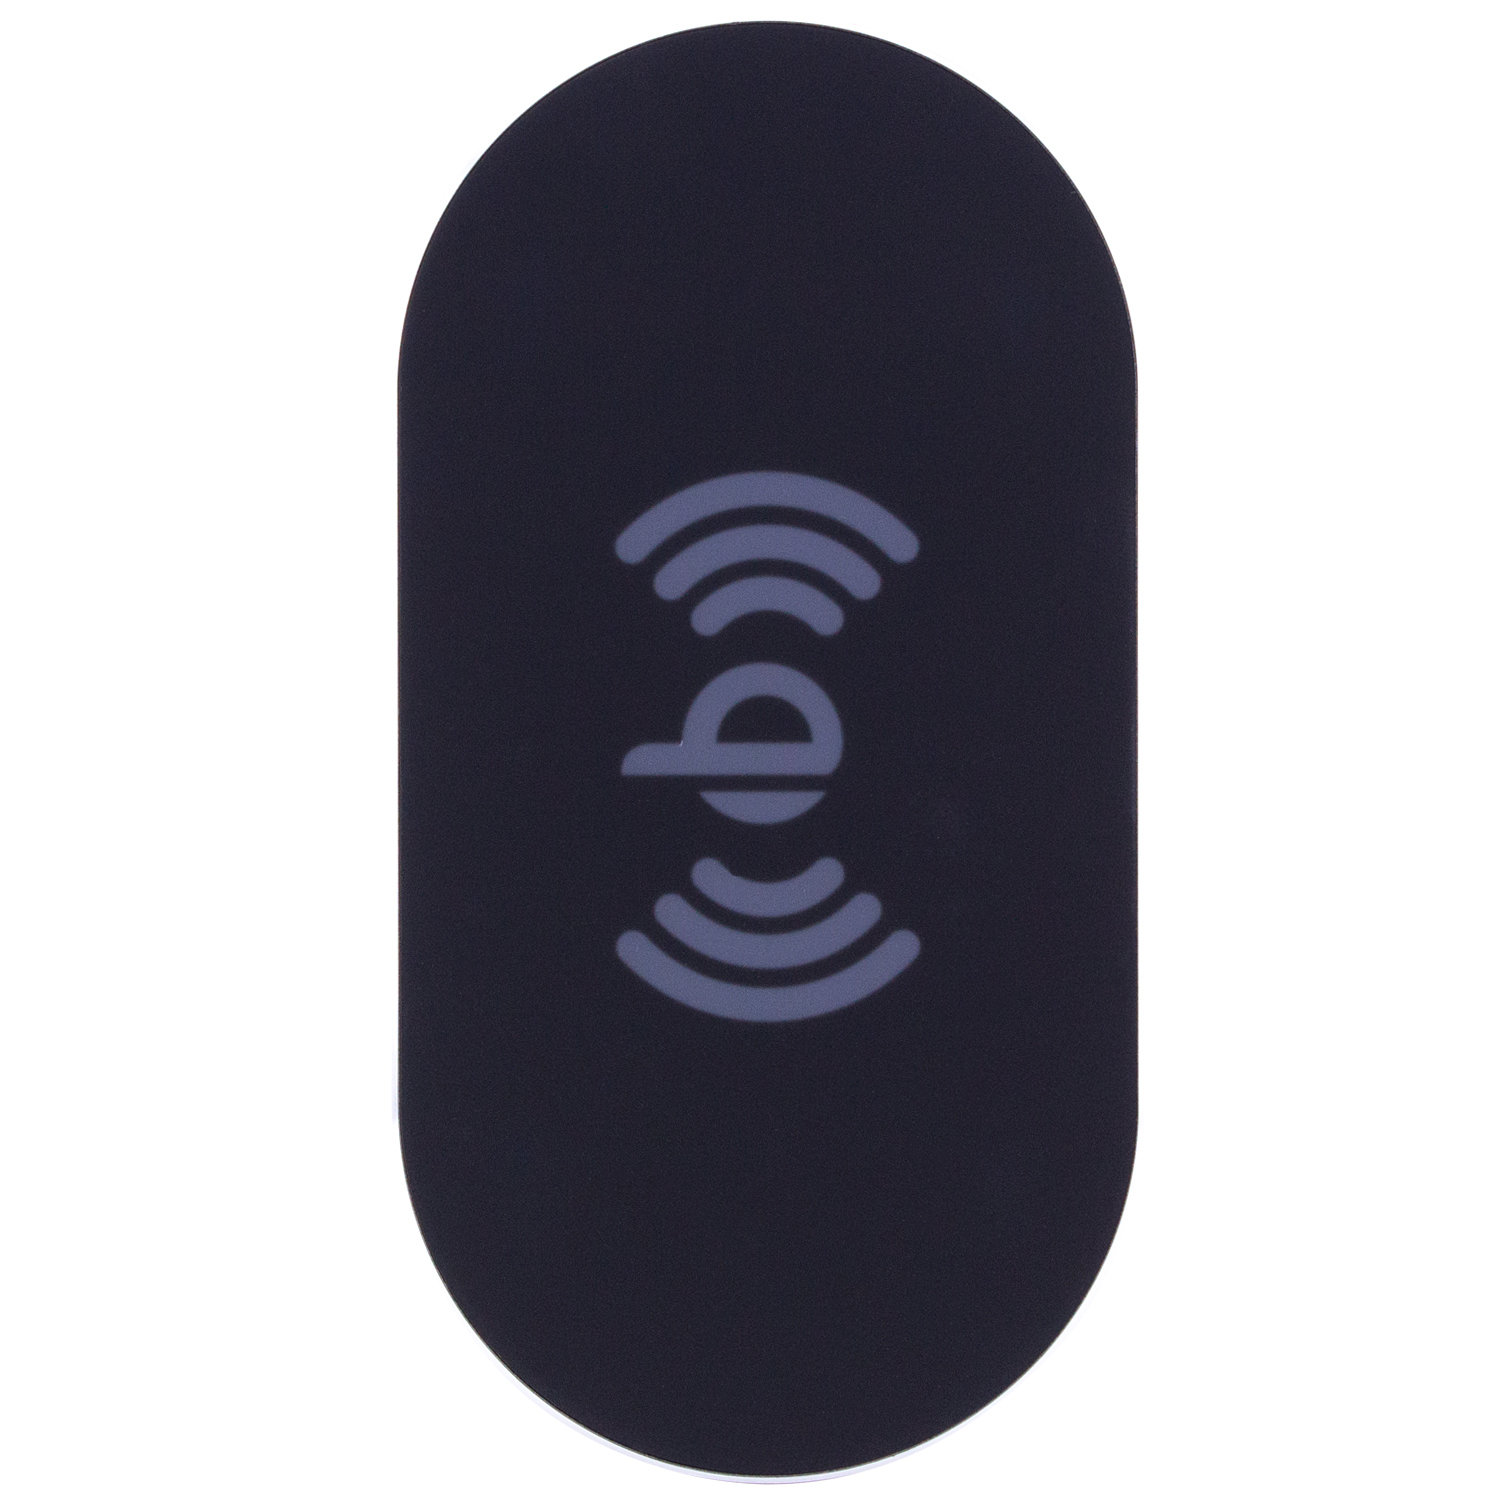 Awei W2 Wireless Charger